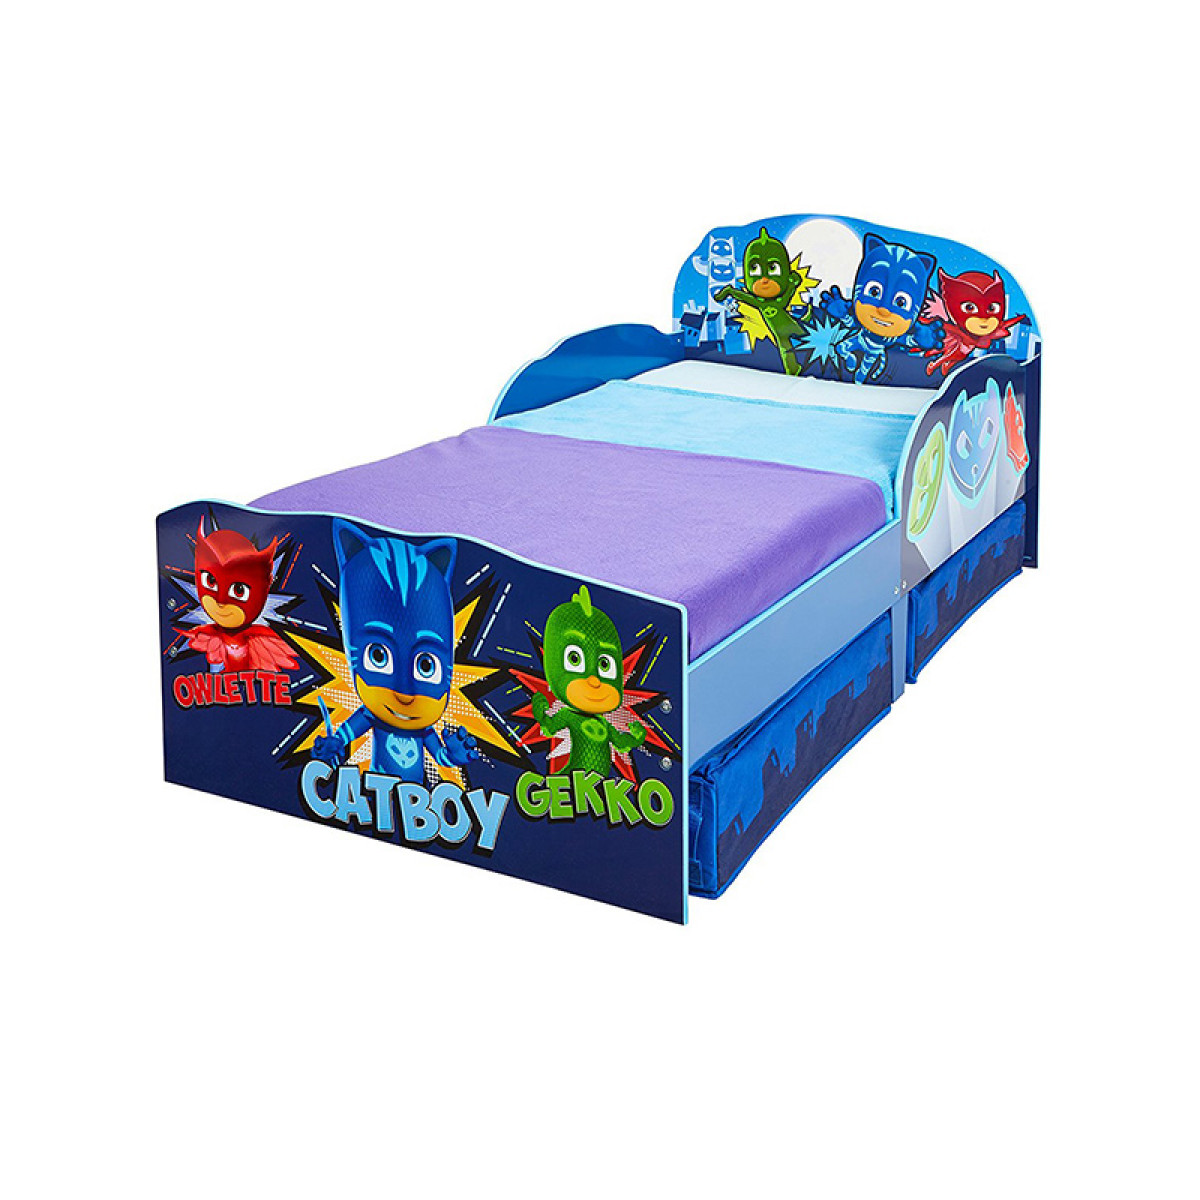 dory com baby finding disney children bed dp plastic amazon delta with storage toddler pixar